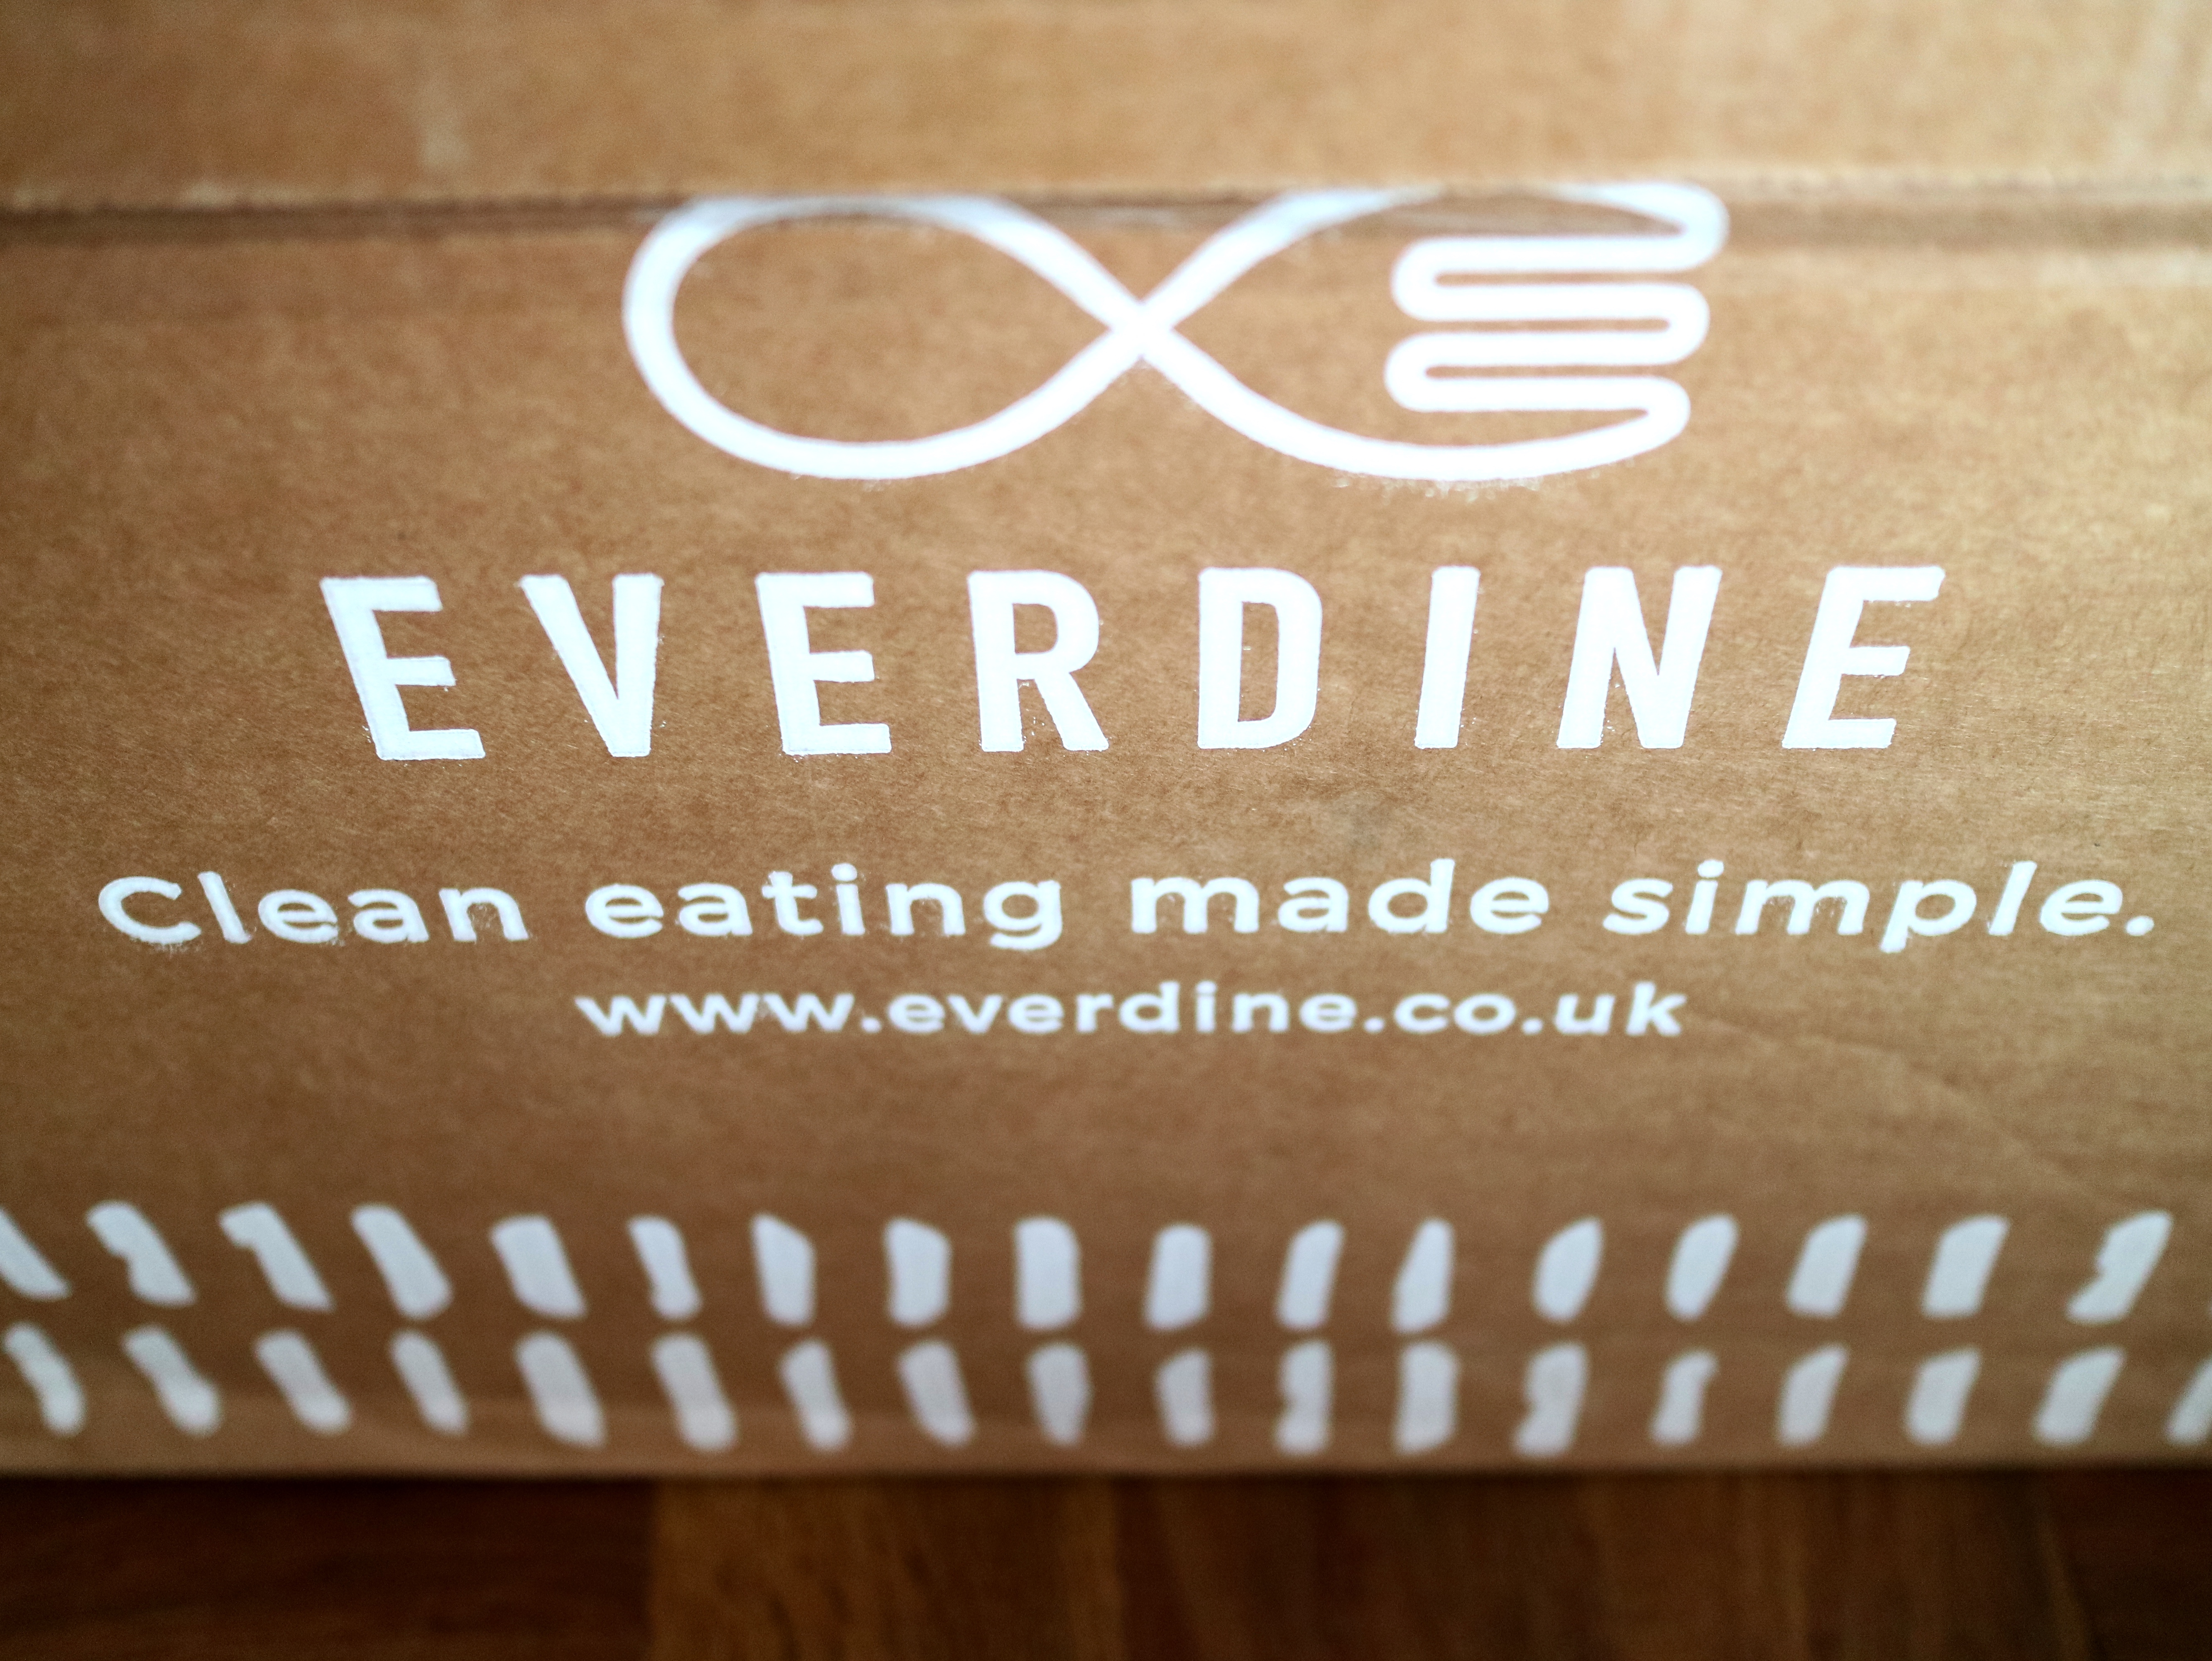 Everdine Food Delivery Service